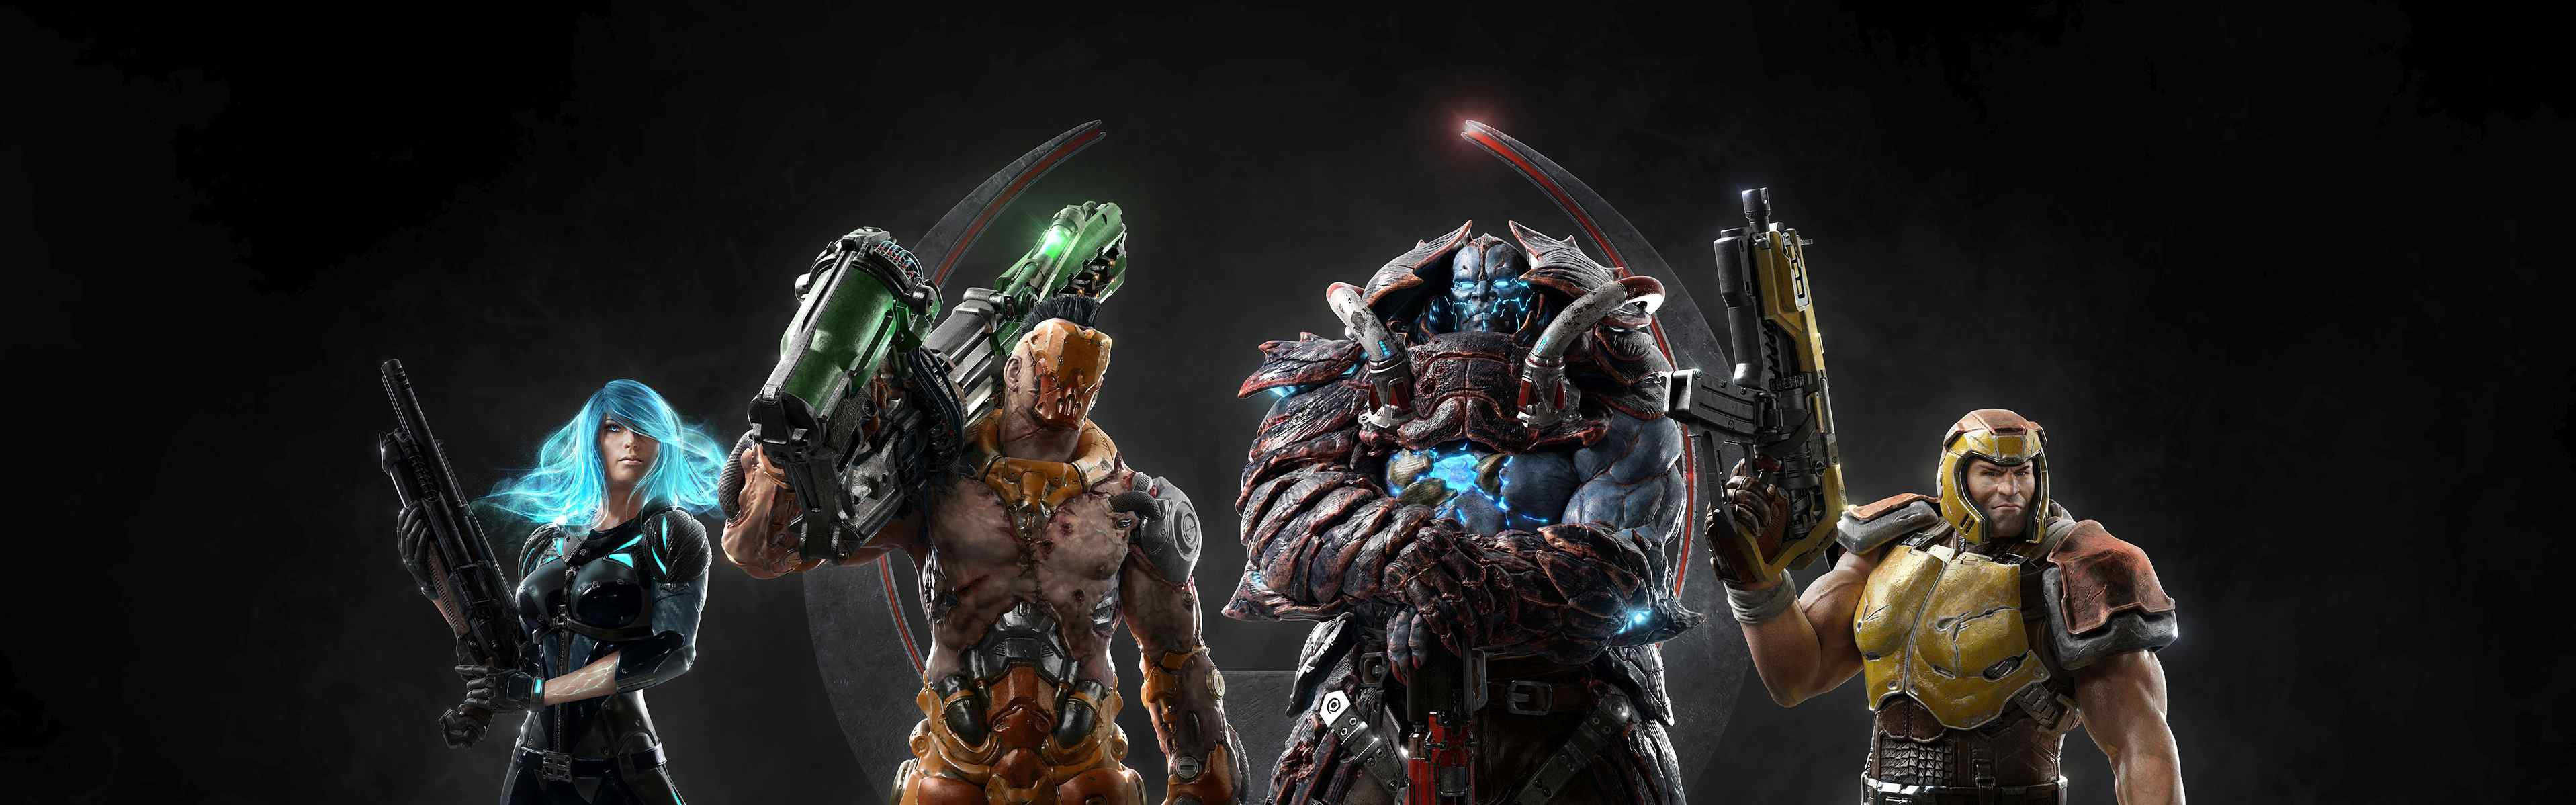 Quake Champions: Champions Pack Edition Bethesda.net Key GLOBAL